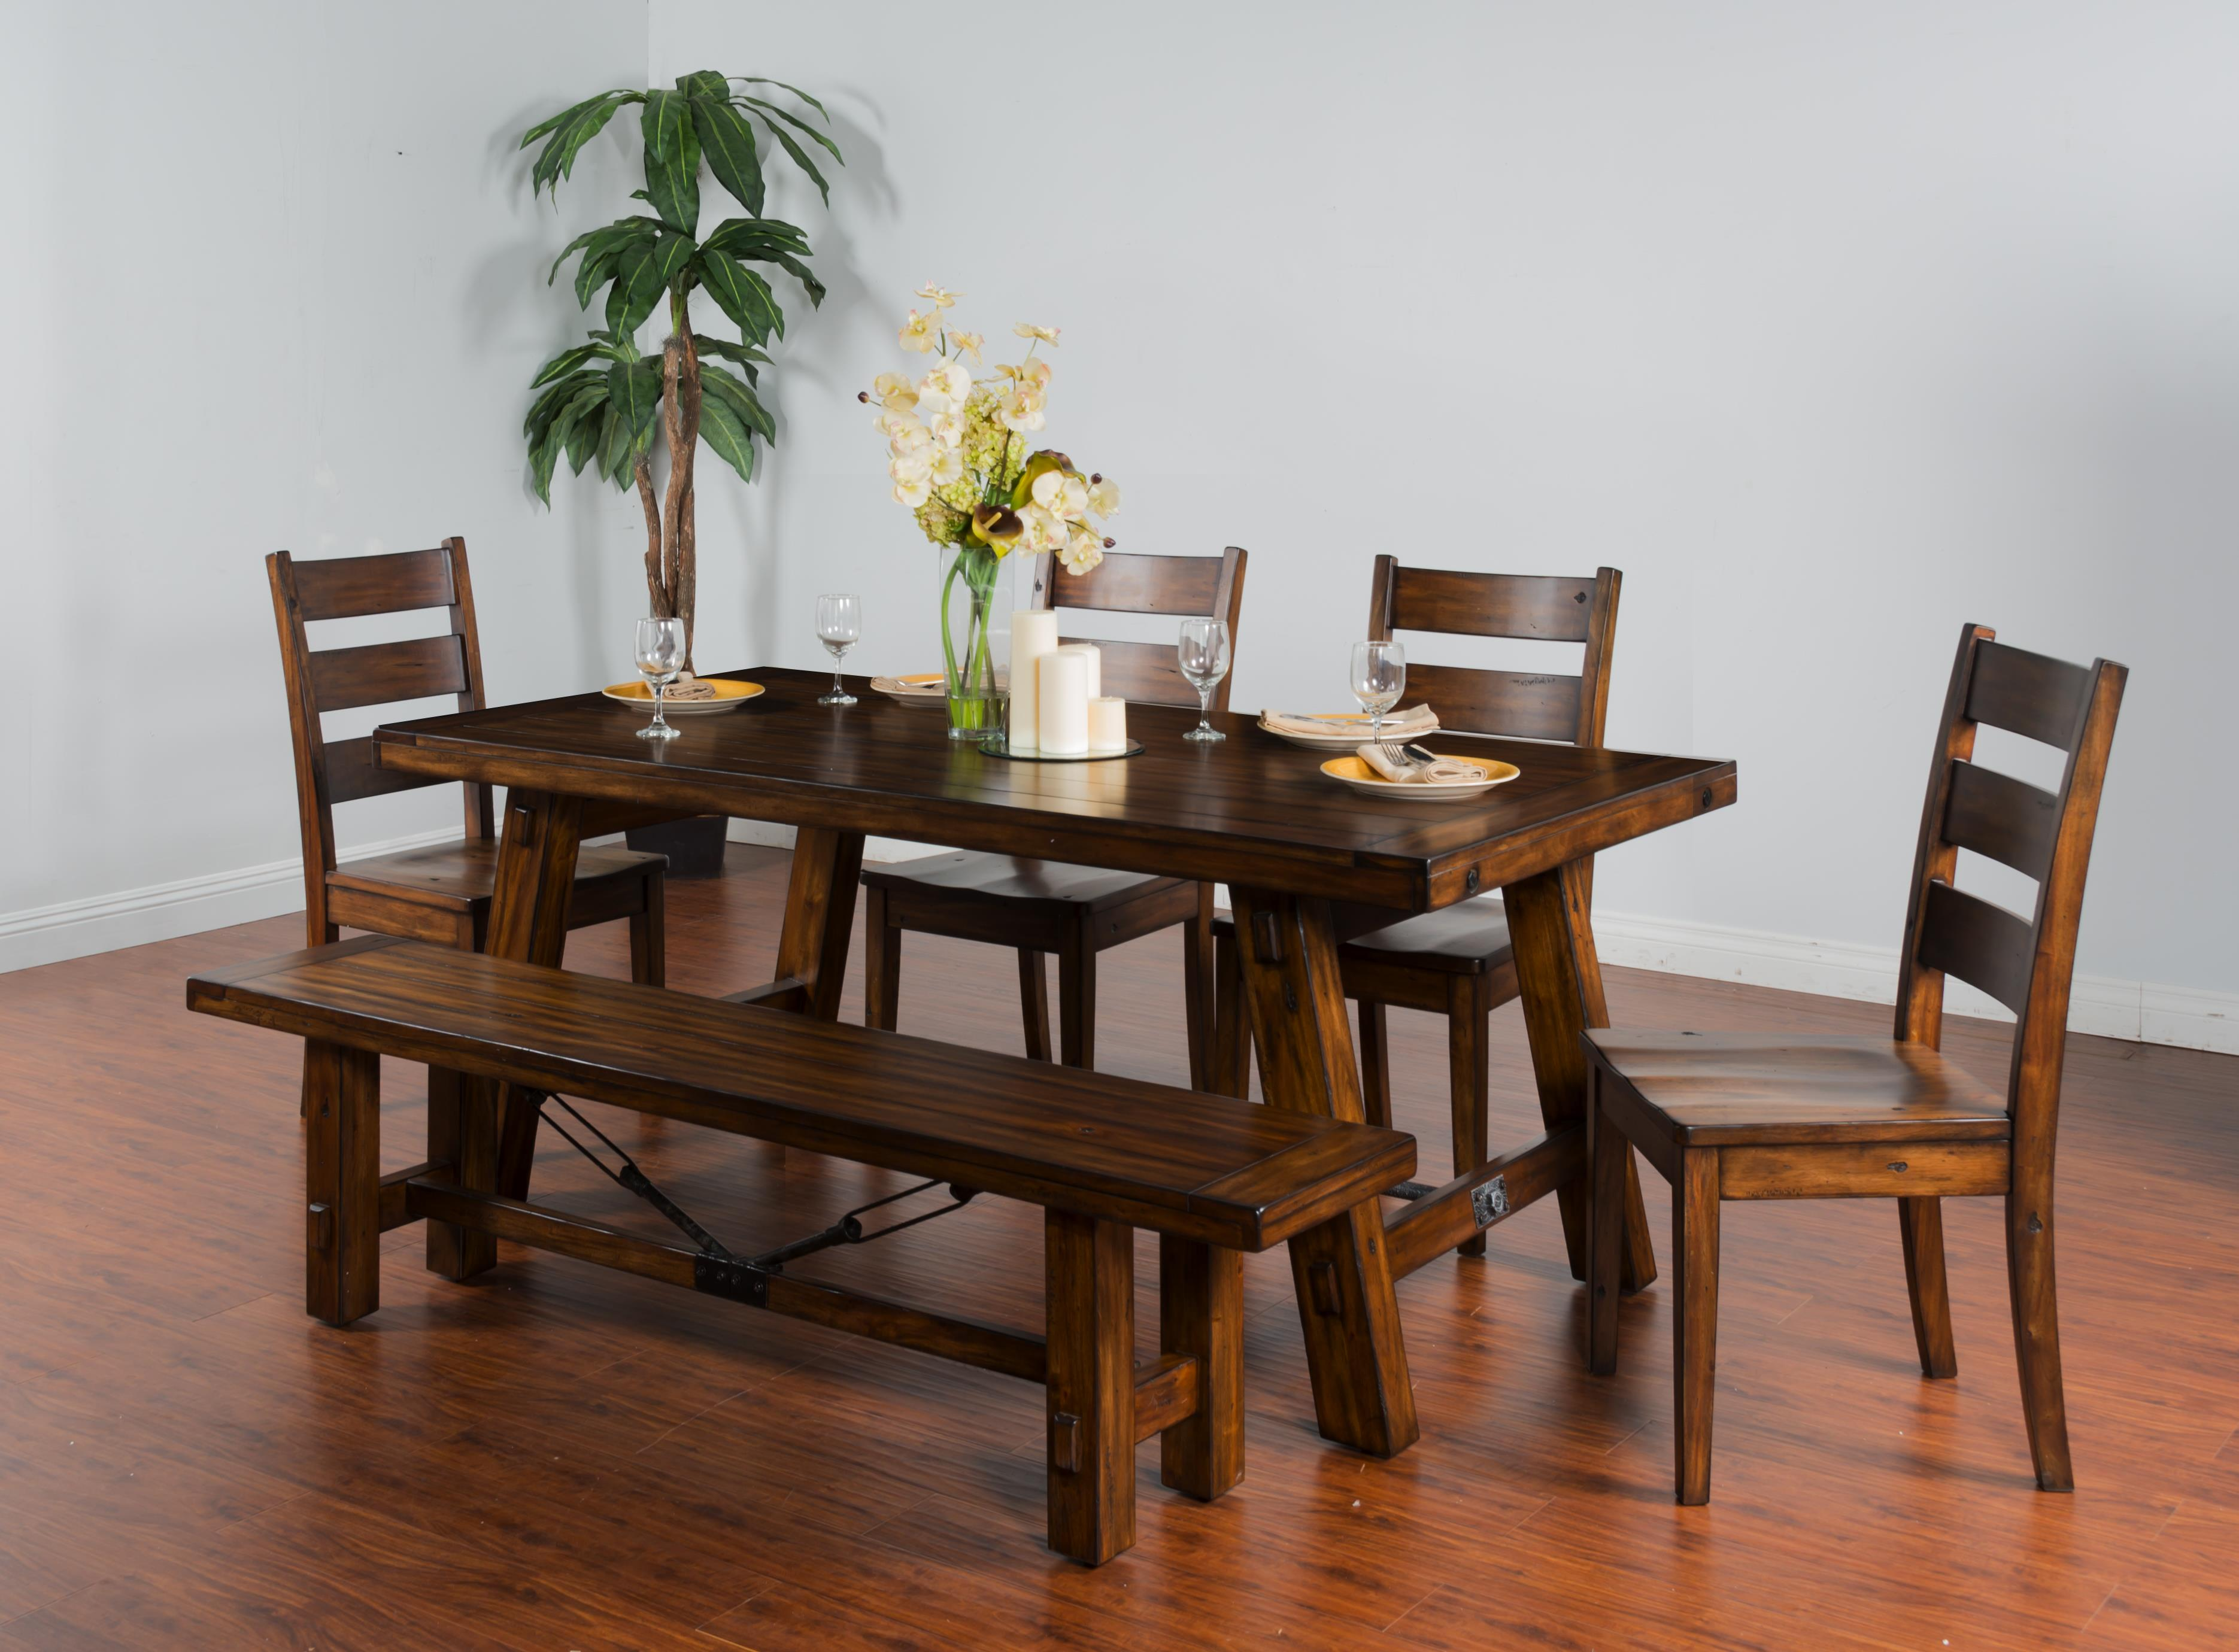 accent chairs for dining room table used no plumbing pedicure chair sunny designs tuscany distressed mahogany extension